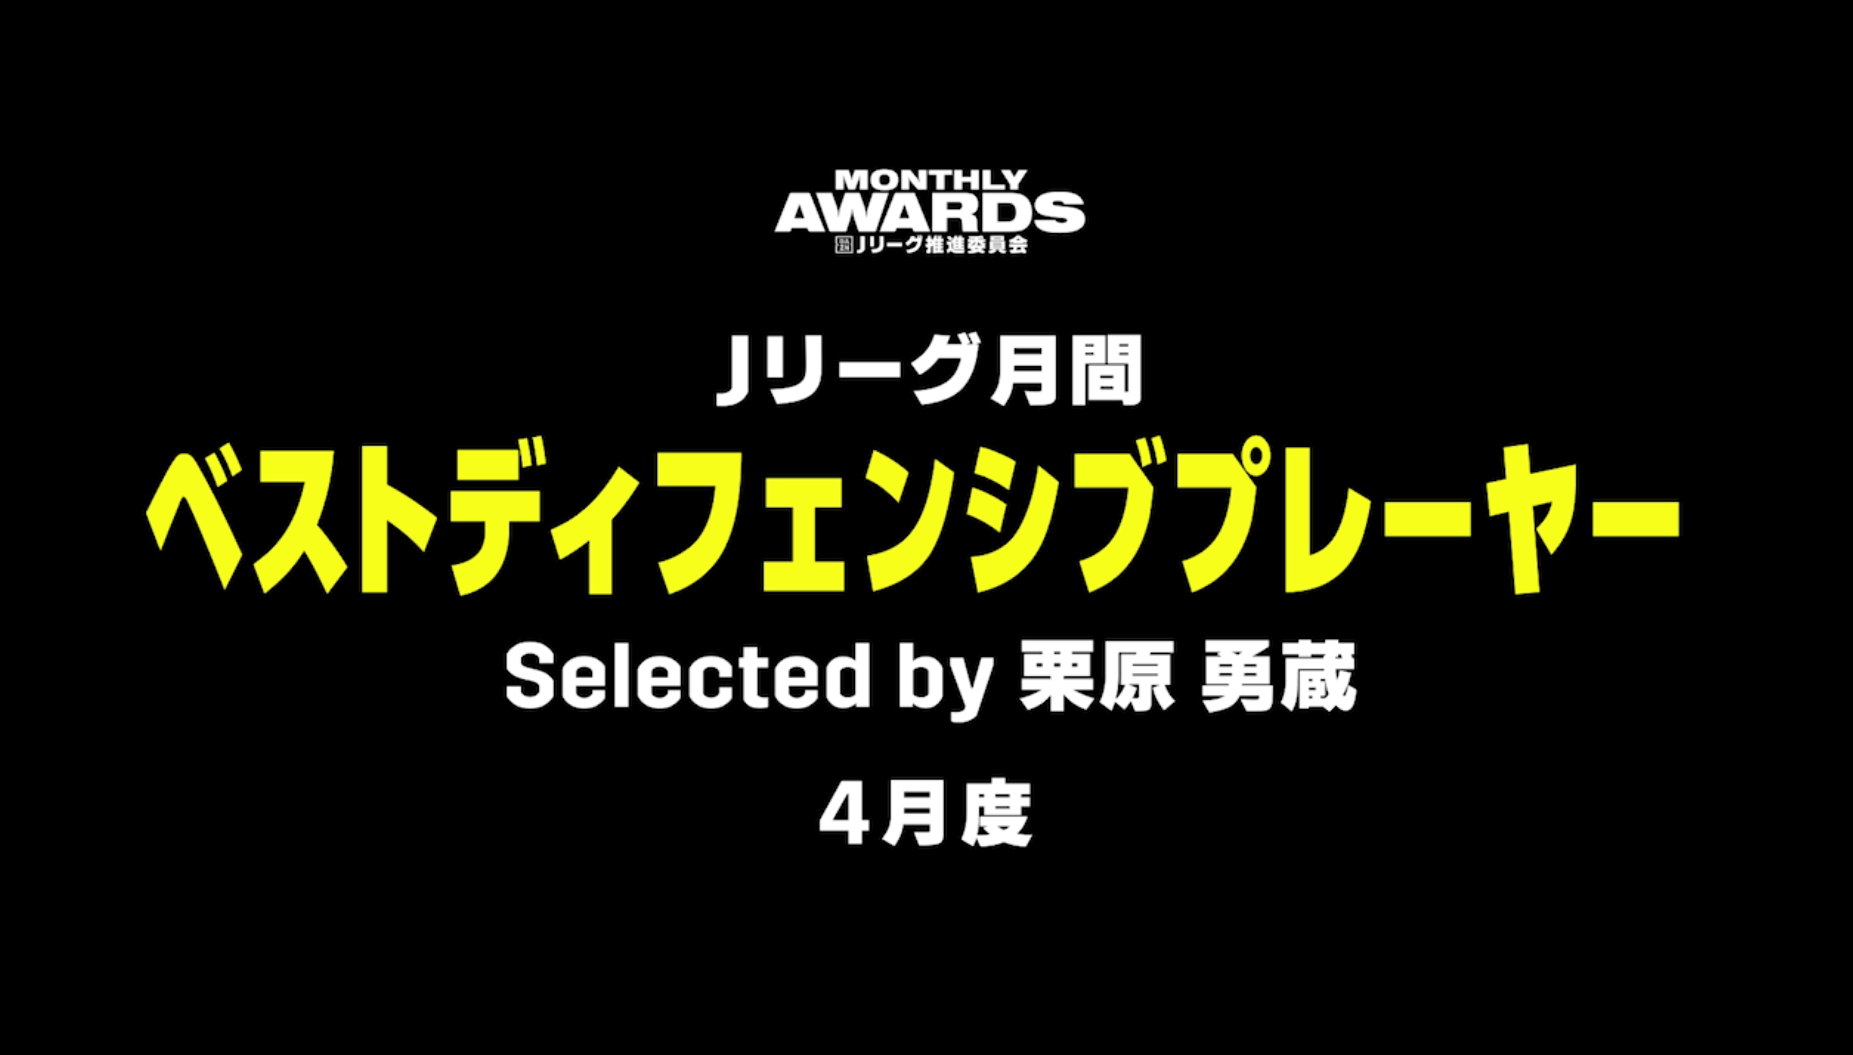 Jリーグ月間ベストディフェンシブプレーヤー Selected by 栗原勇蔵 4月度 - 浦和DF西大伍